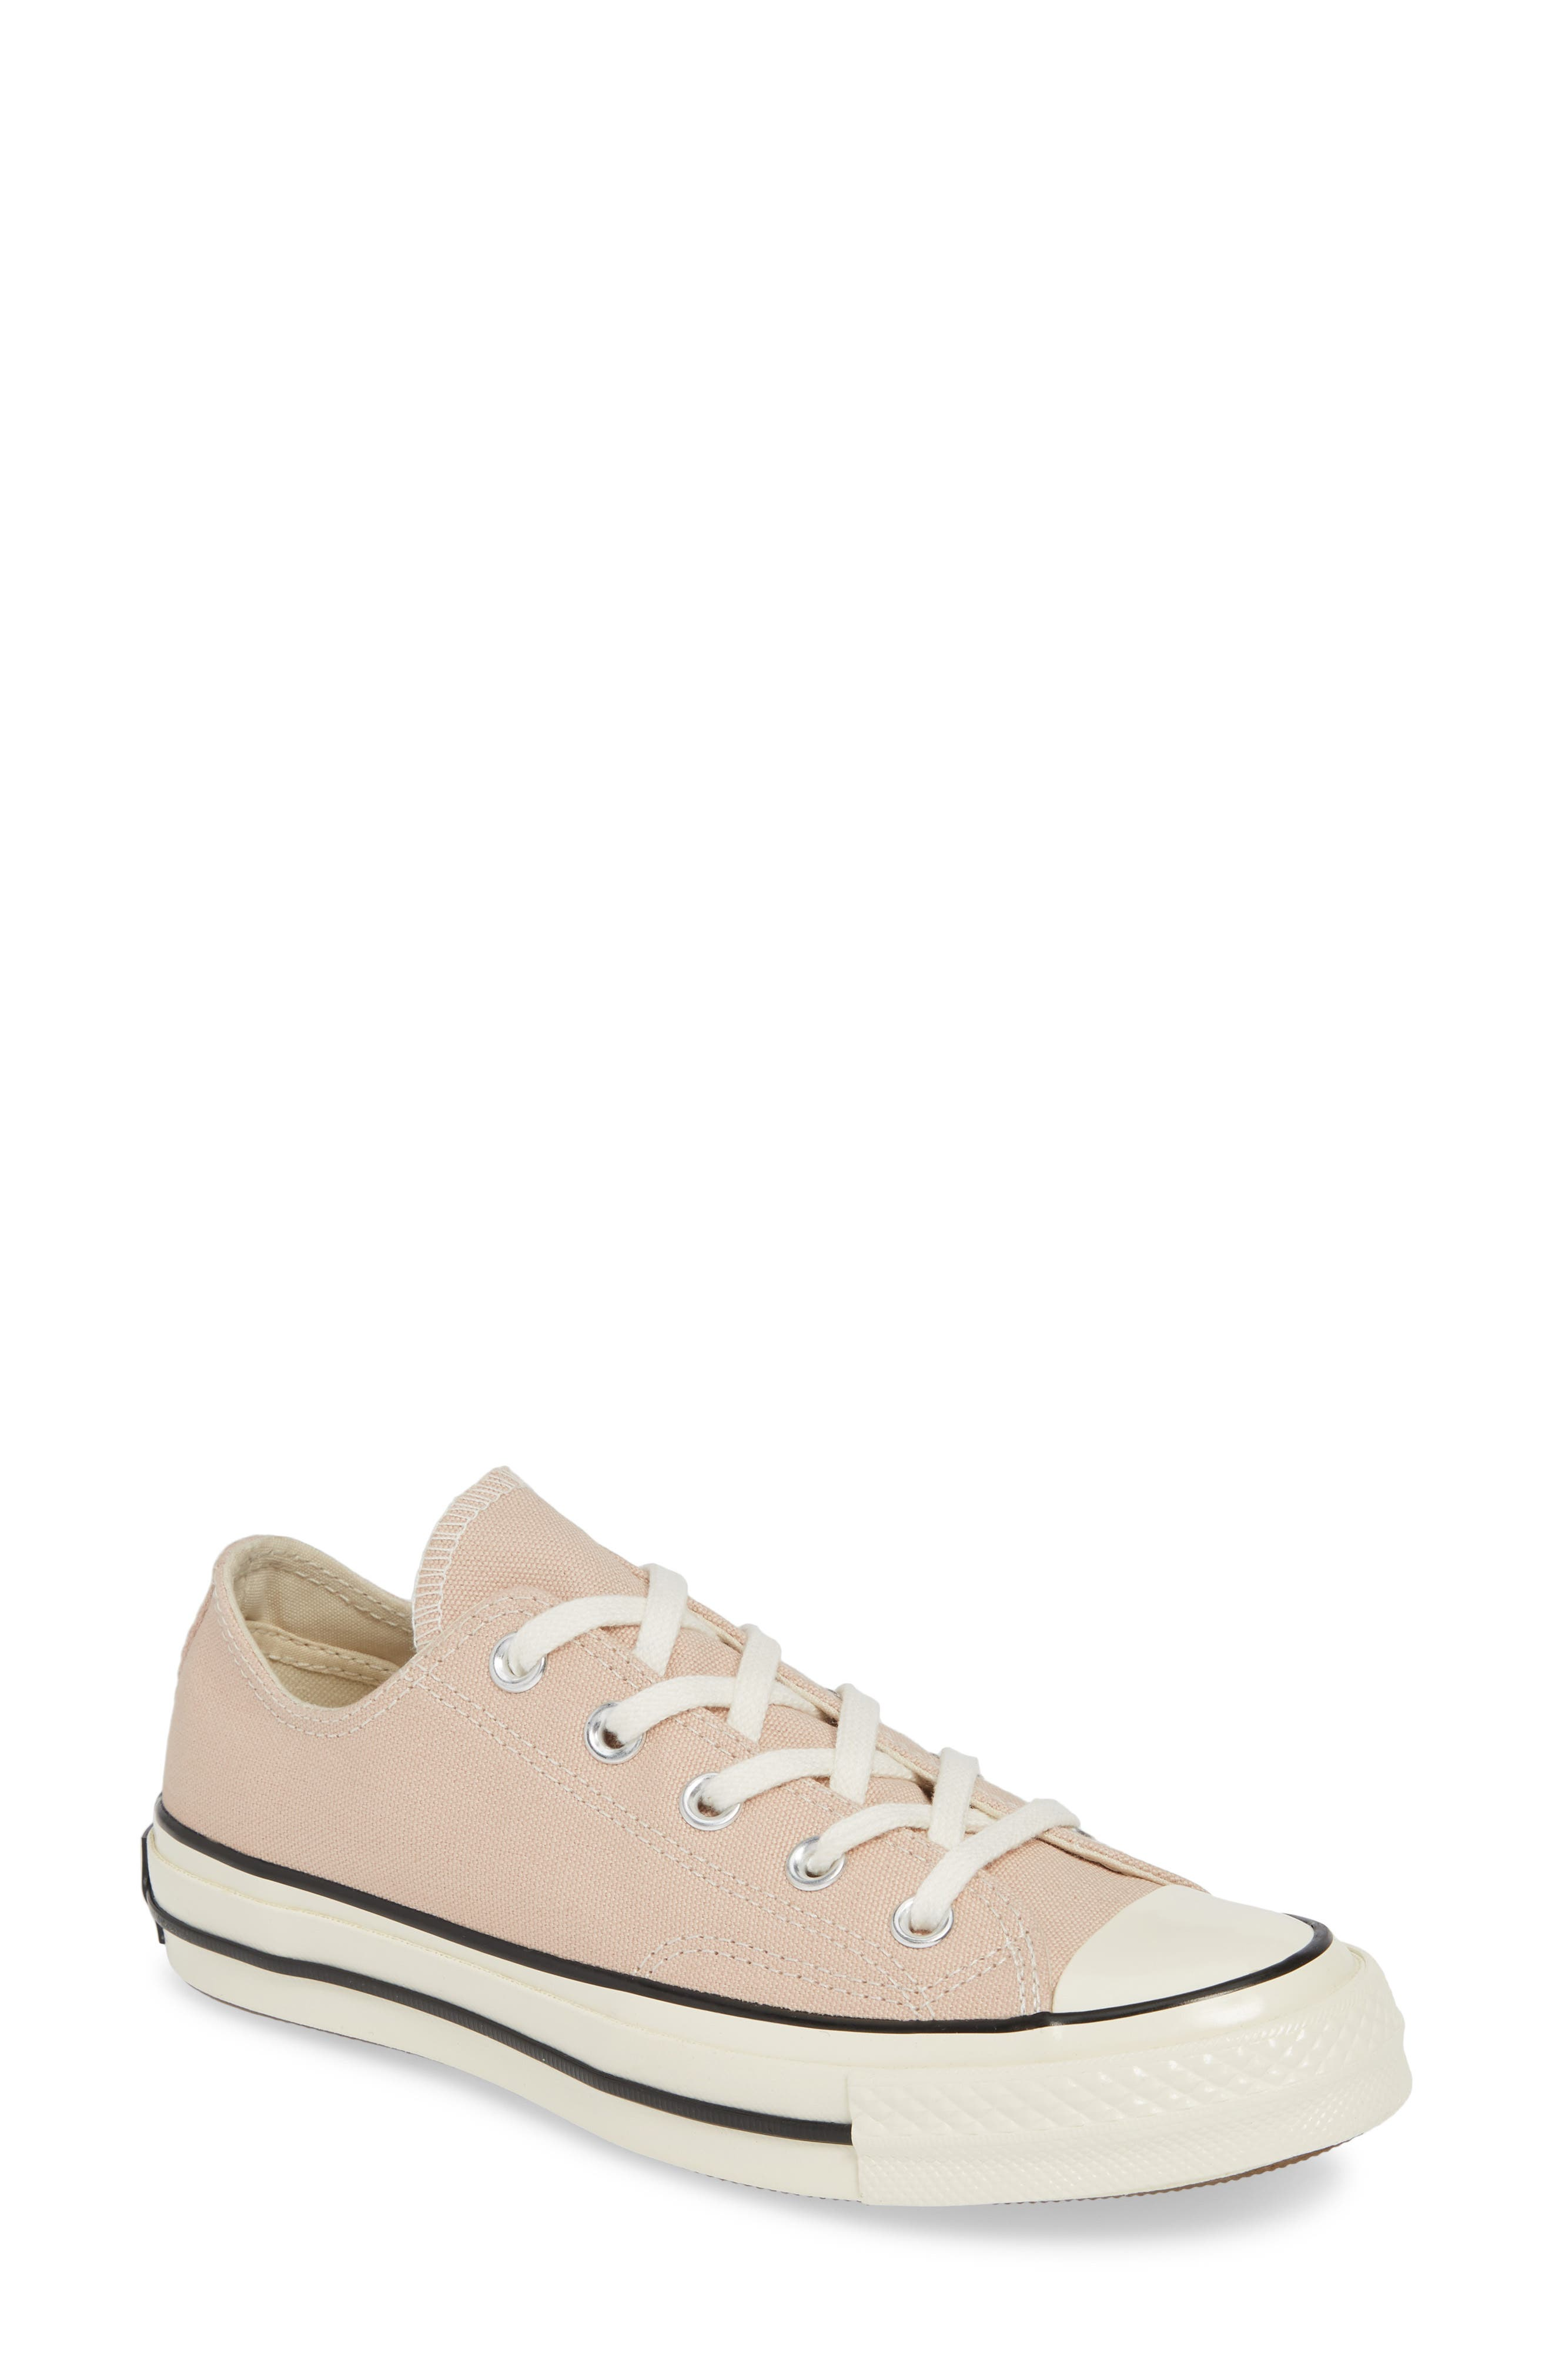 CONVERSE Chuck Taylor<sup>®</sup> All Star<sup>®</sup> Chuck 70 Ox Sneaker, Main, color, PARTICLE BEIGE/ BLACK/ EGRET